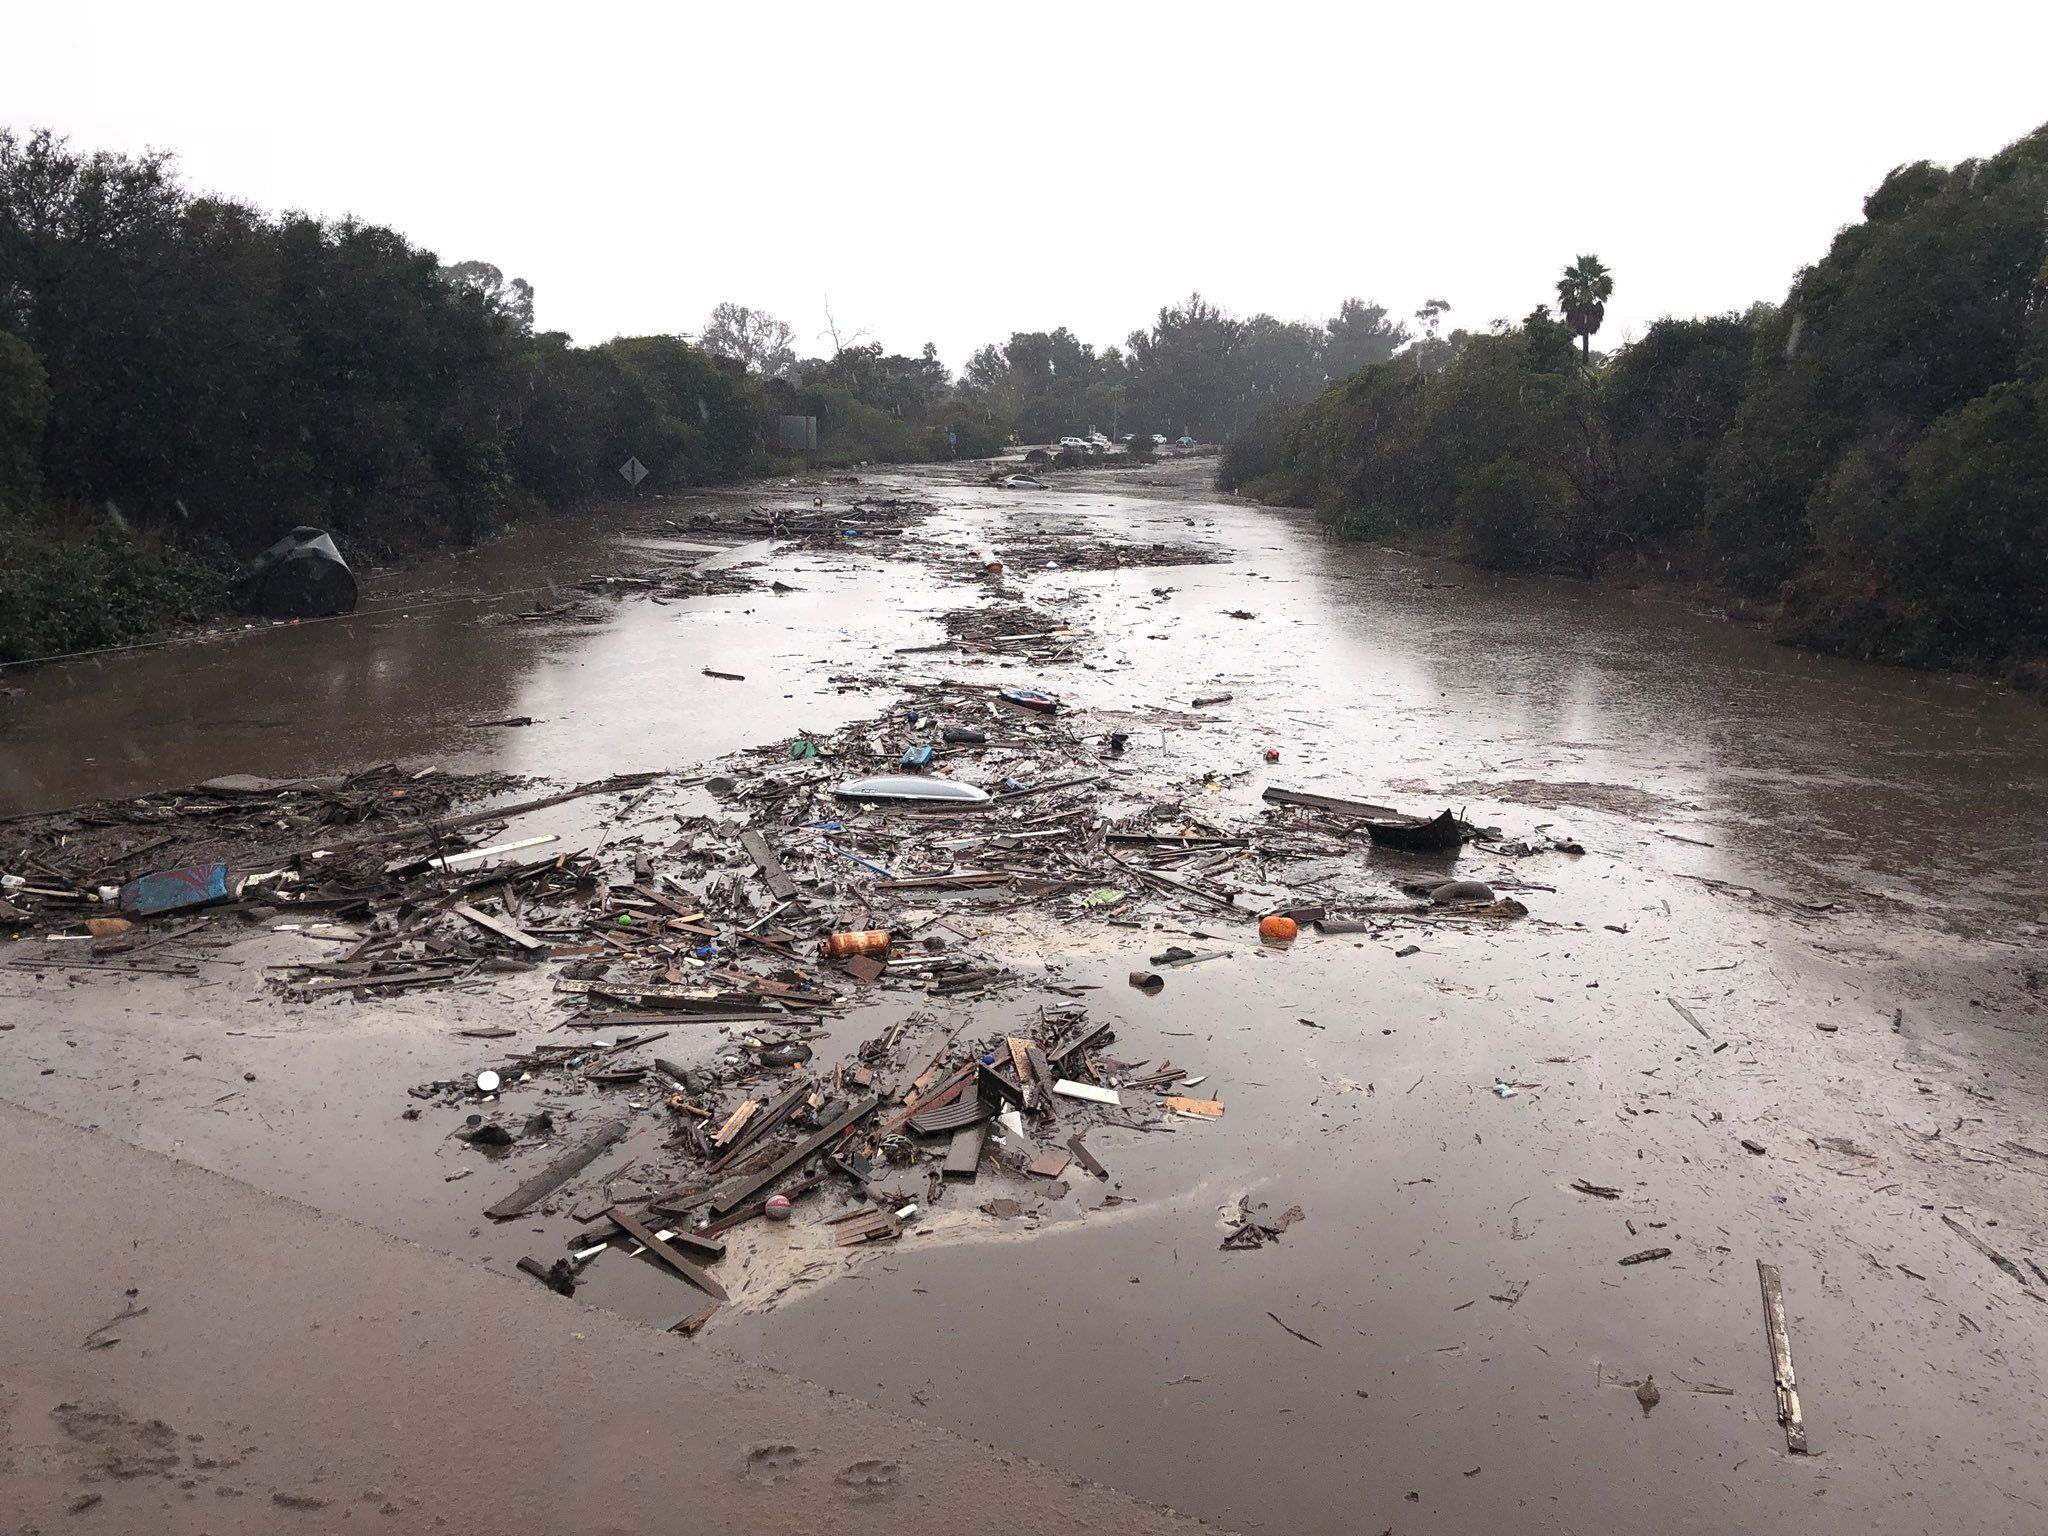 Debris floats in flooded waters on the freeway after a mudslide in Montecito, California, U.S. in this photo provided by the Santa Barbara County Fire Department, January 9, 2018.   Mike Eliason/Santa Barbara County Fire Department/Handout via REUTERS     ATTENTION EDITORS - THIS IMAGE WAS PROVIDED BY A THIRD PARTY.